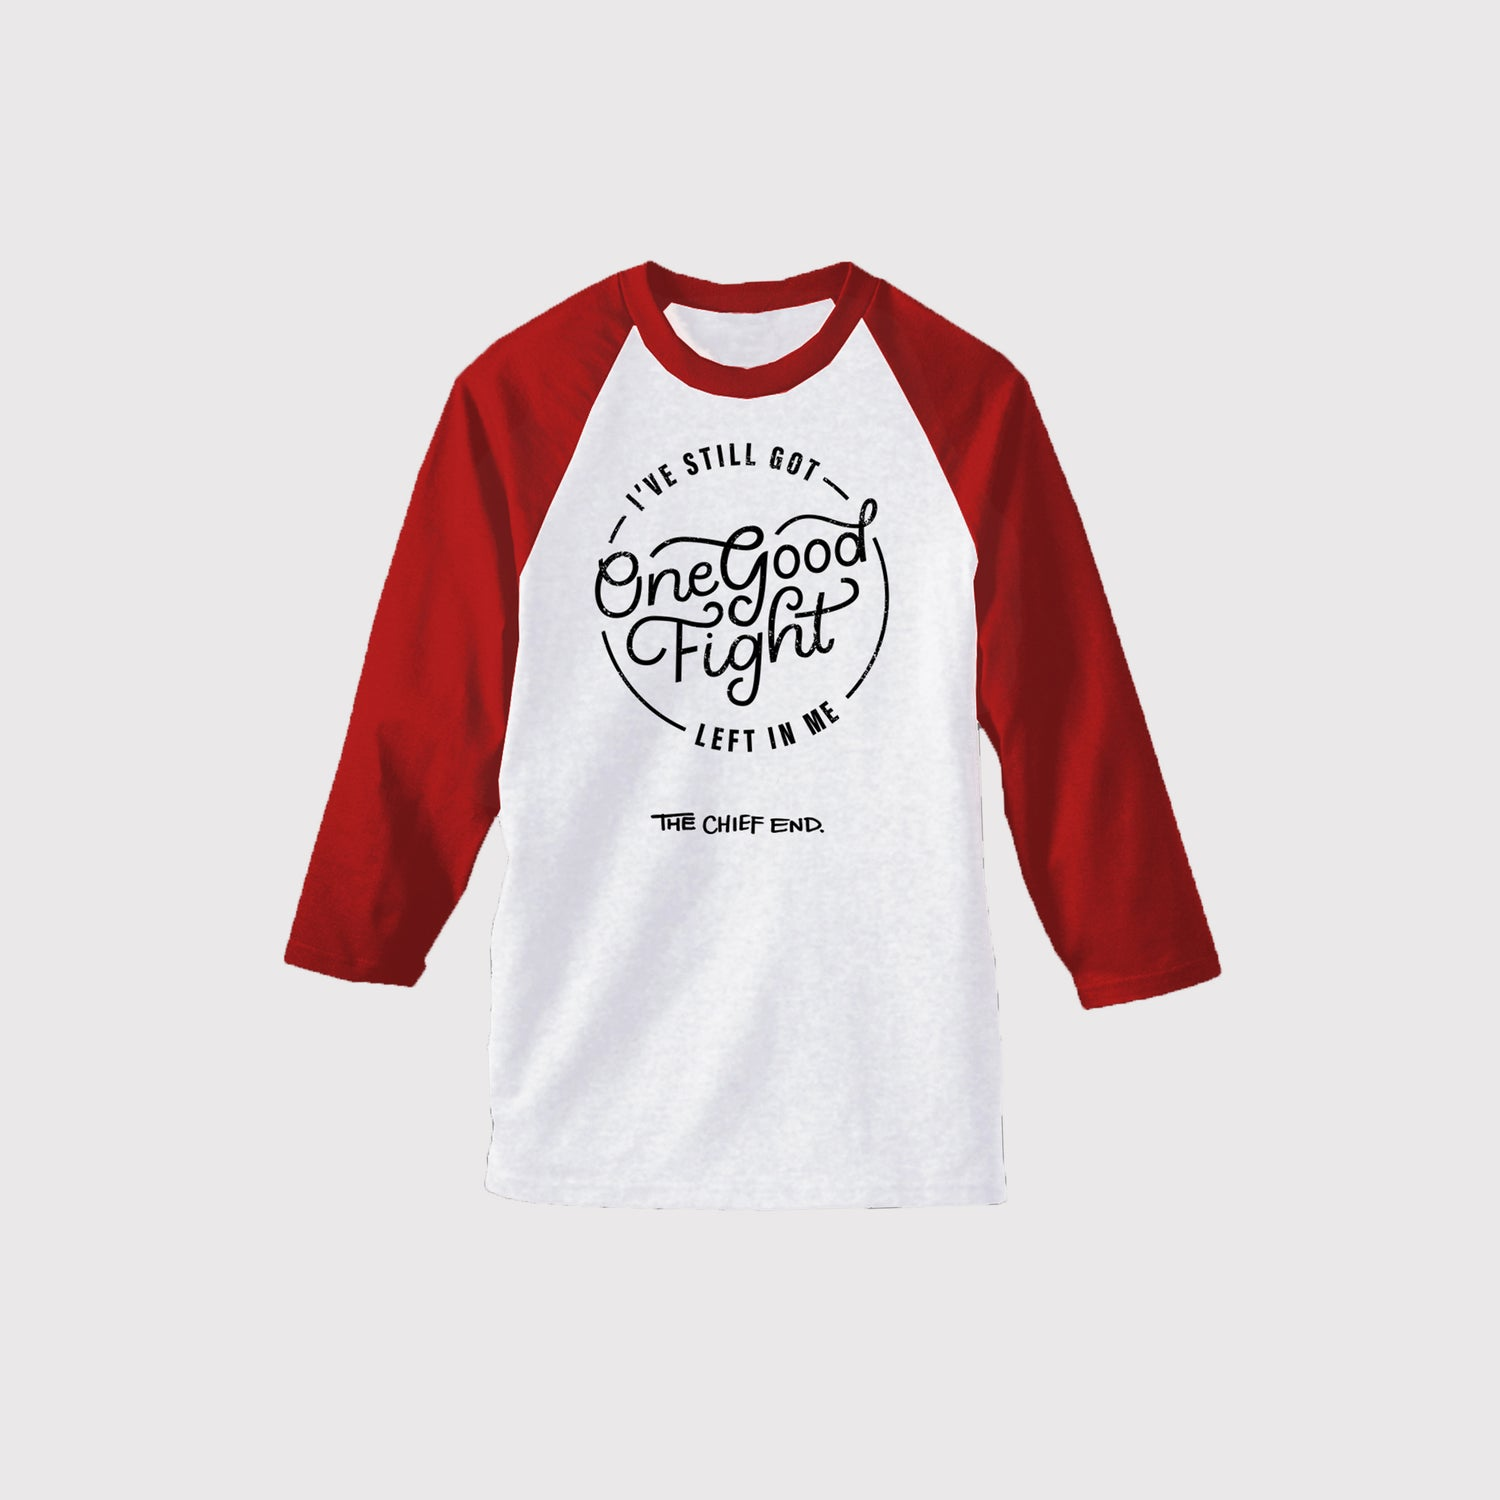 Image of Red and White Baseball Tee